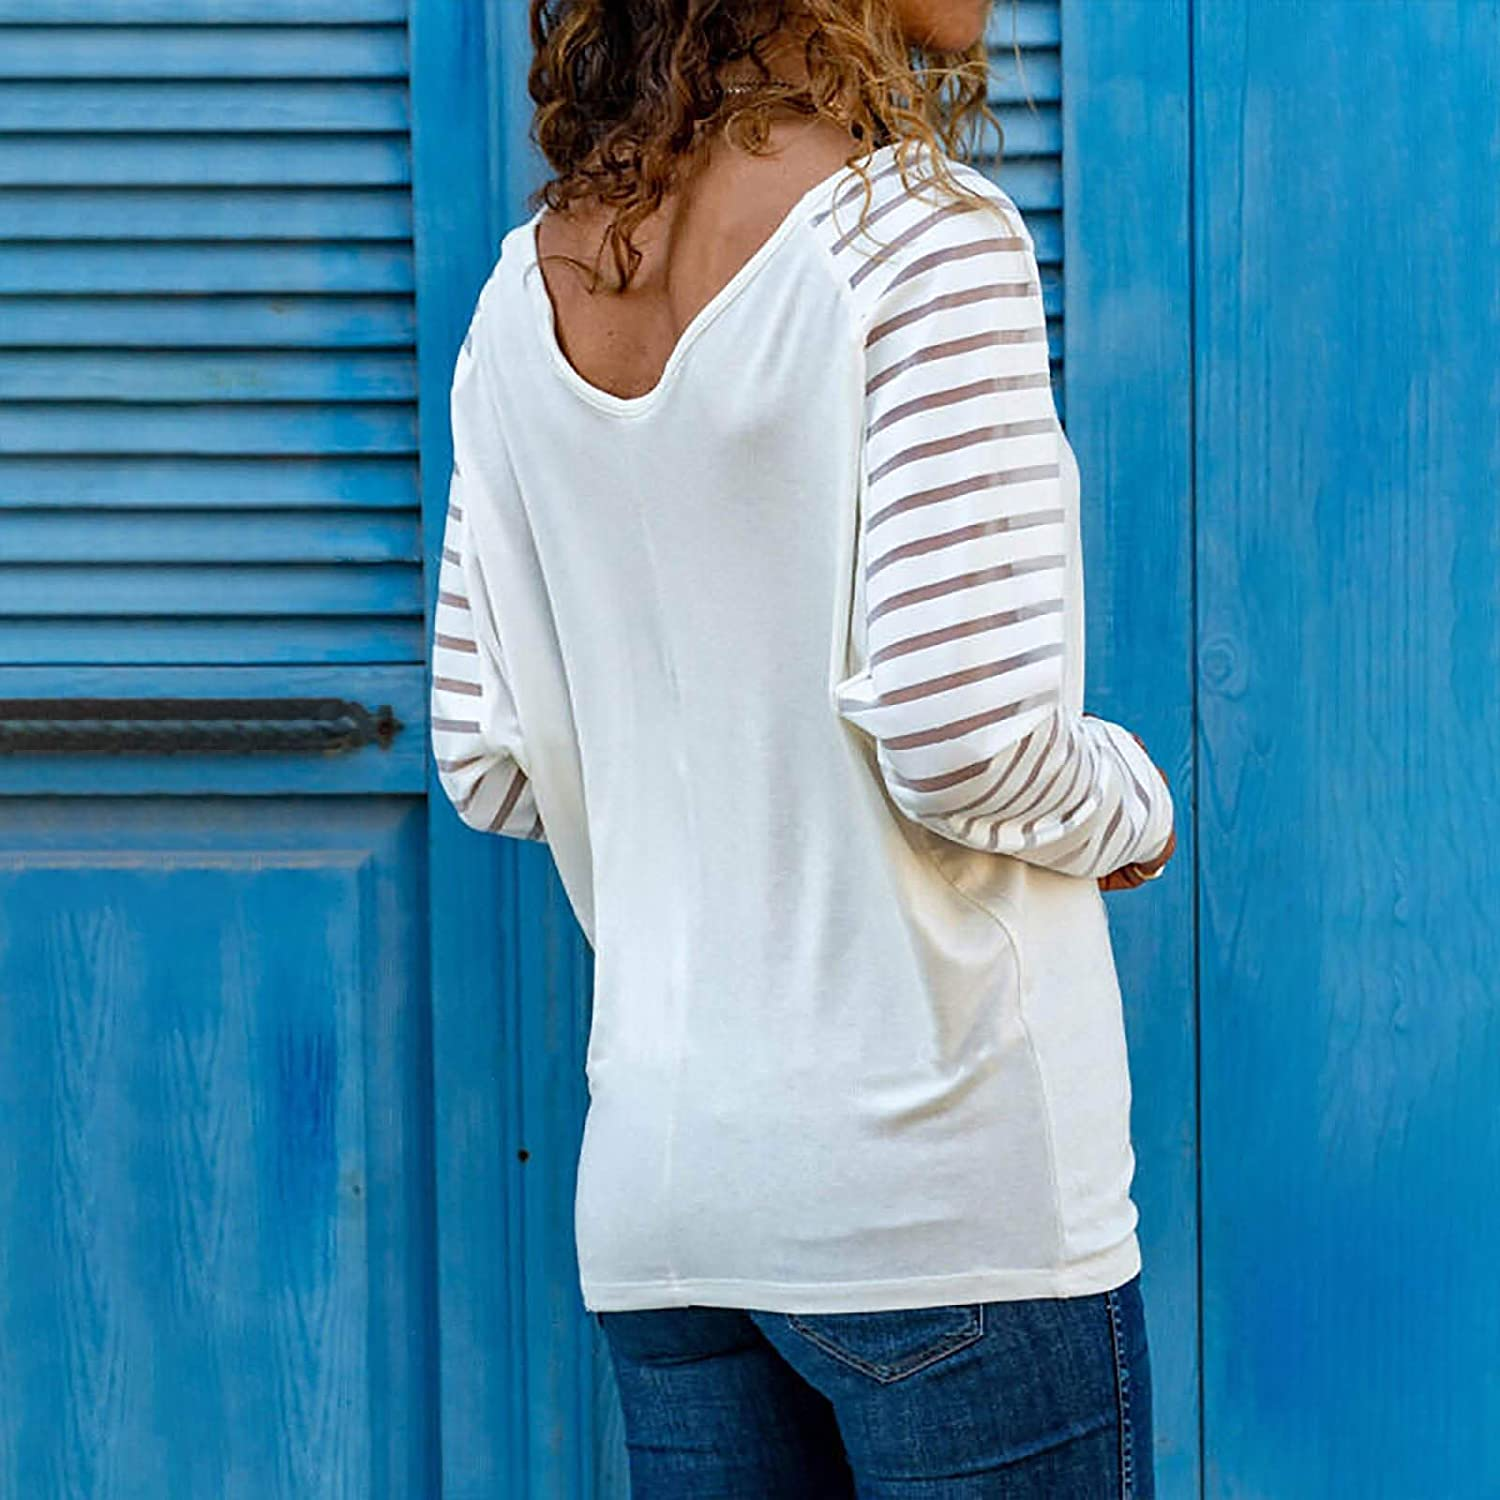 SALIFUN Womens Casual Tunic Tops,Long Sleeve Round Neck Color Casual Blouses Pullover Tops Loose Fit Comfy Sweatshirts